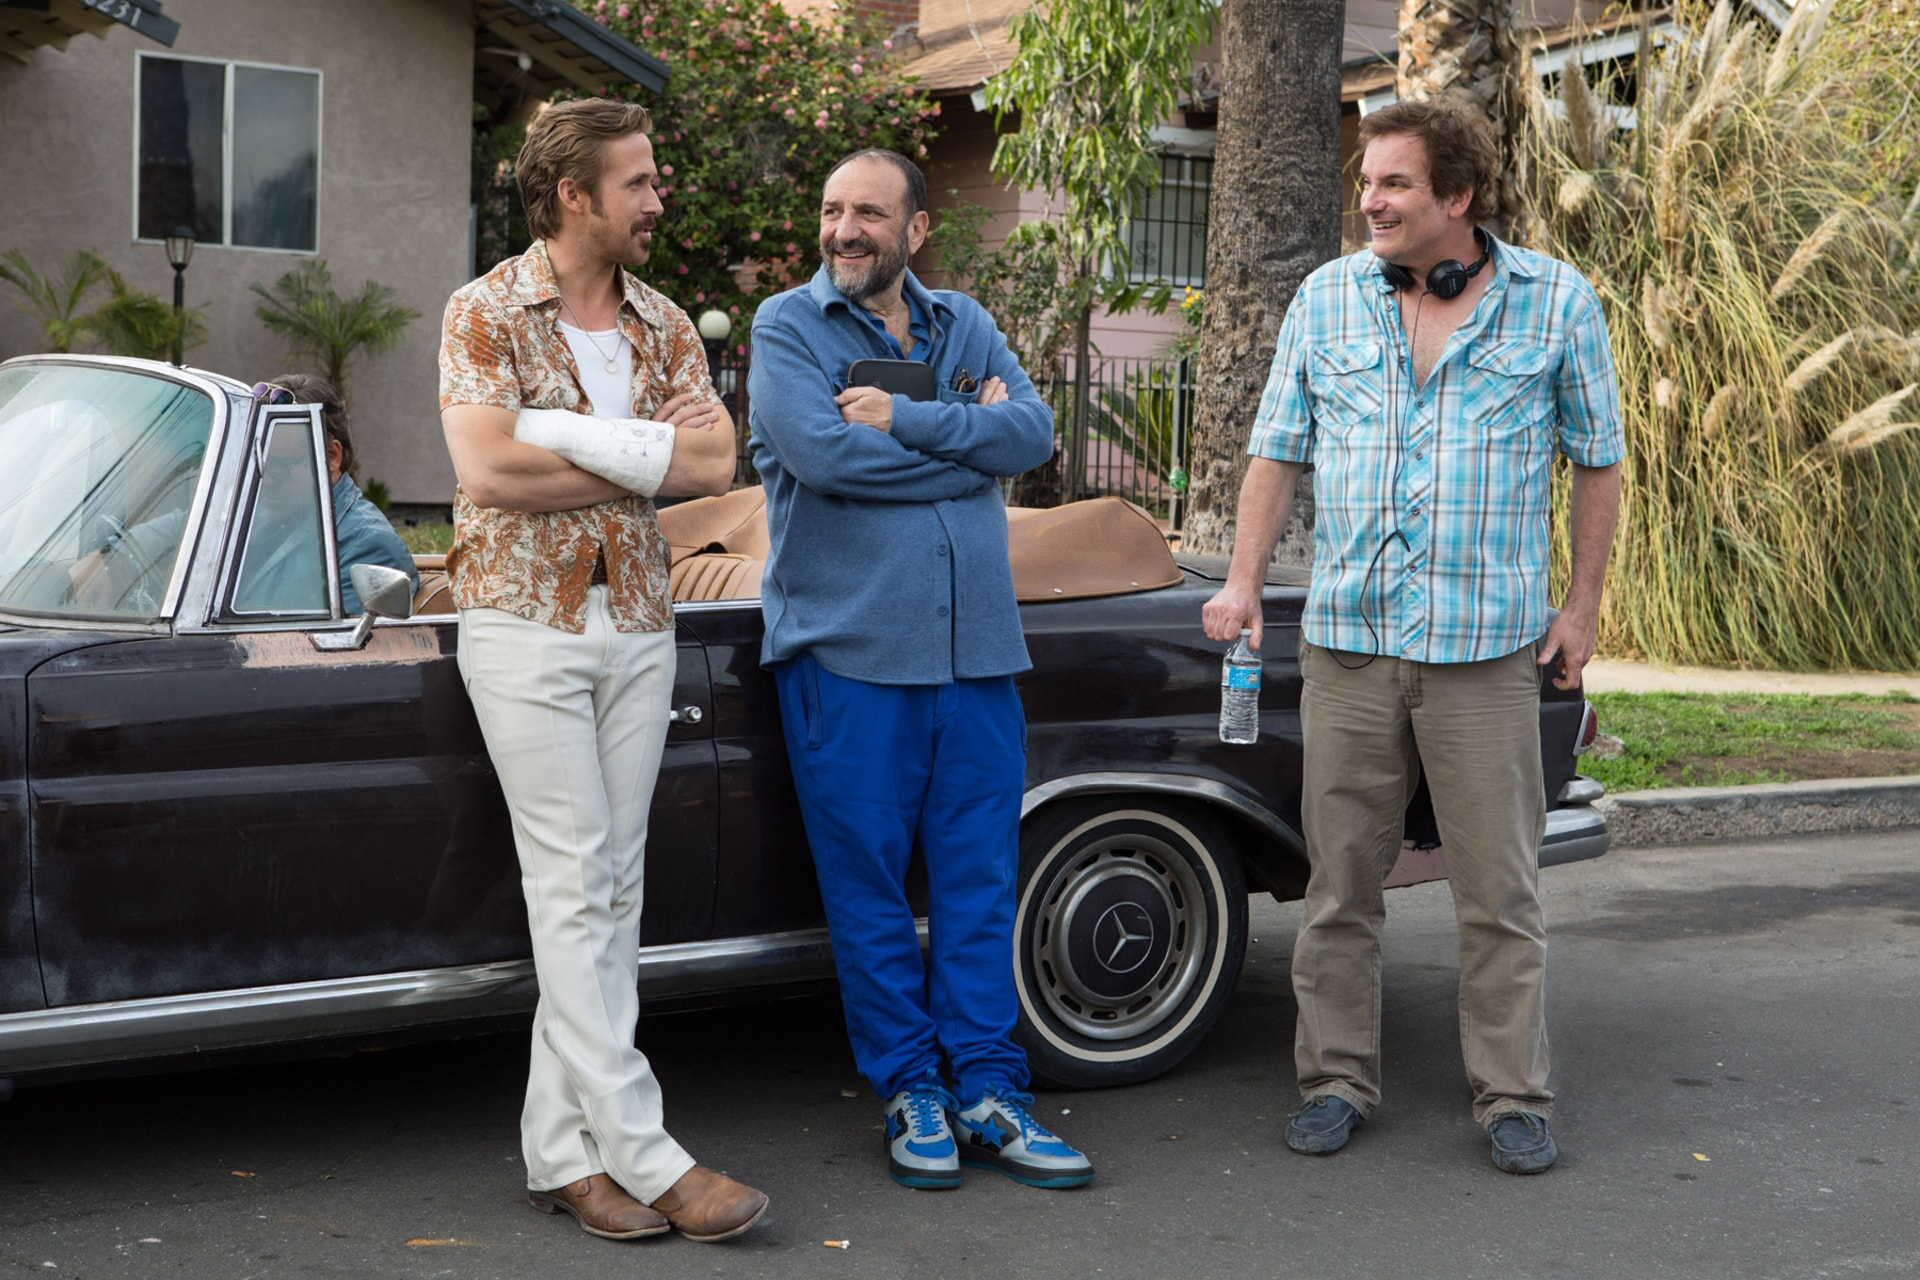 RYAN GOSLING, producer JOEL SILVER and writer/director SHANE BLACK on the set of The Nice Guys